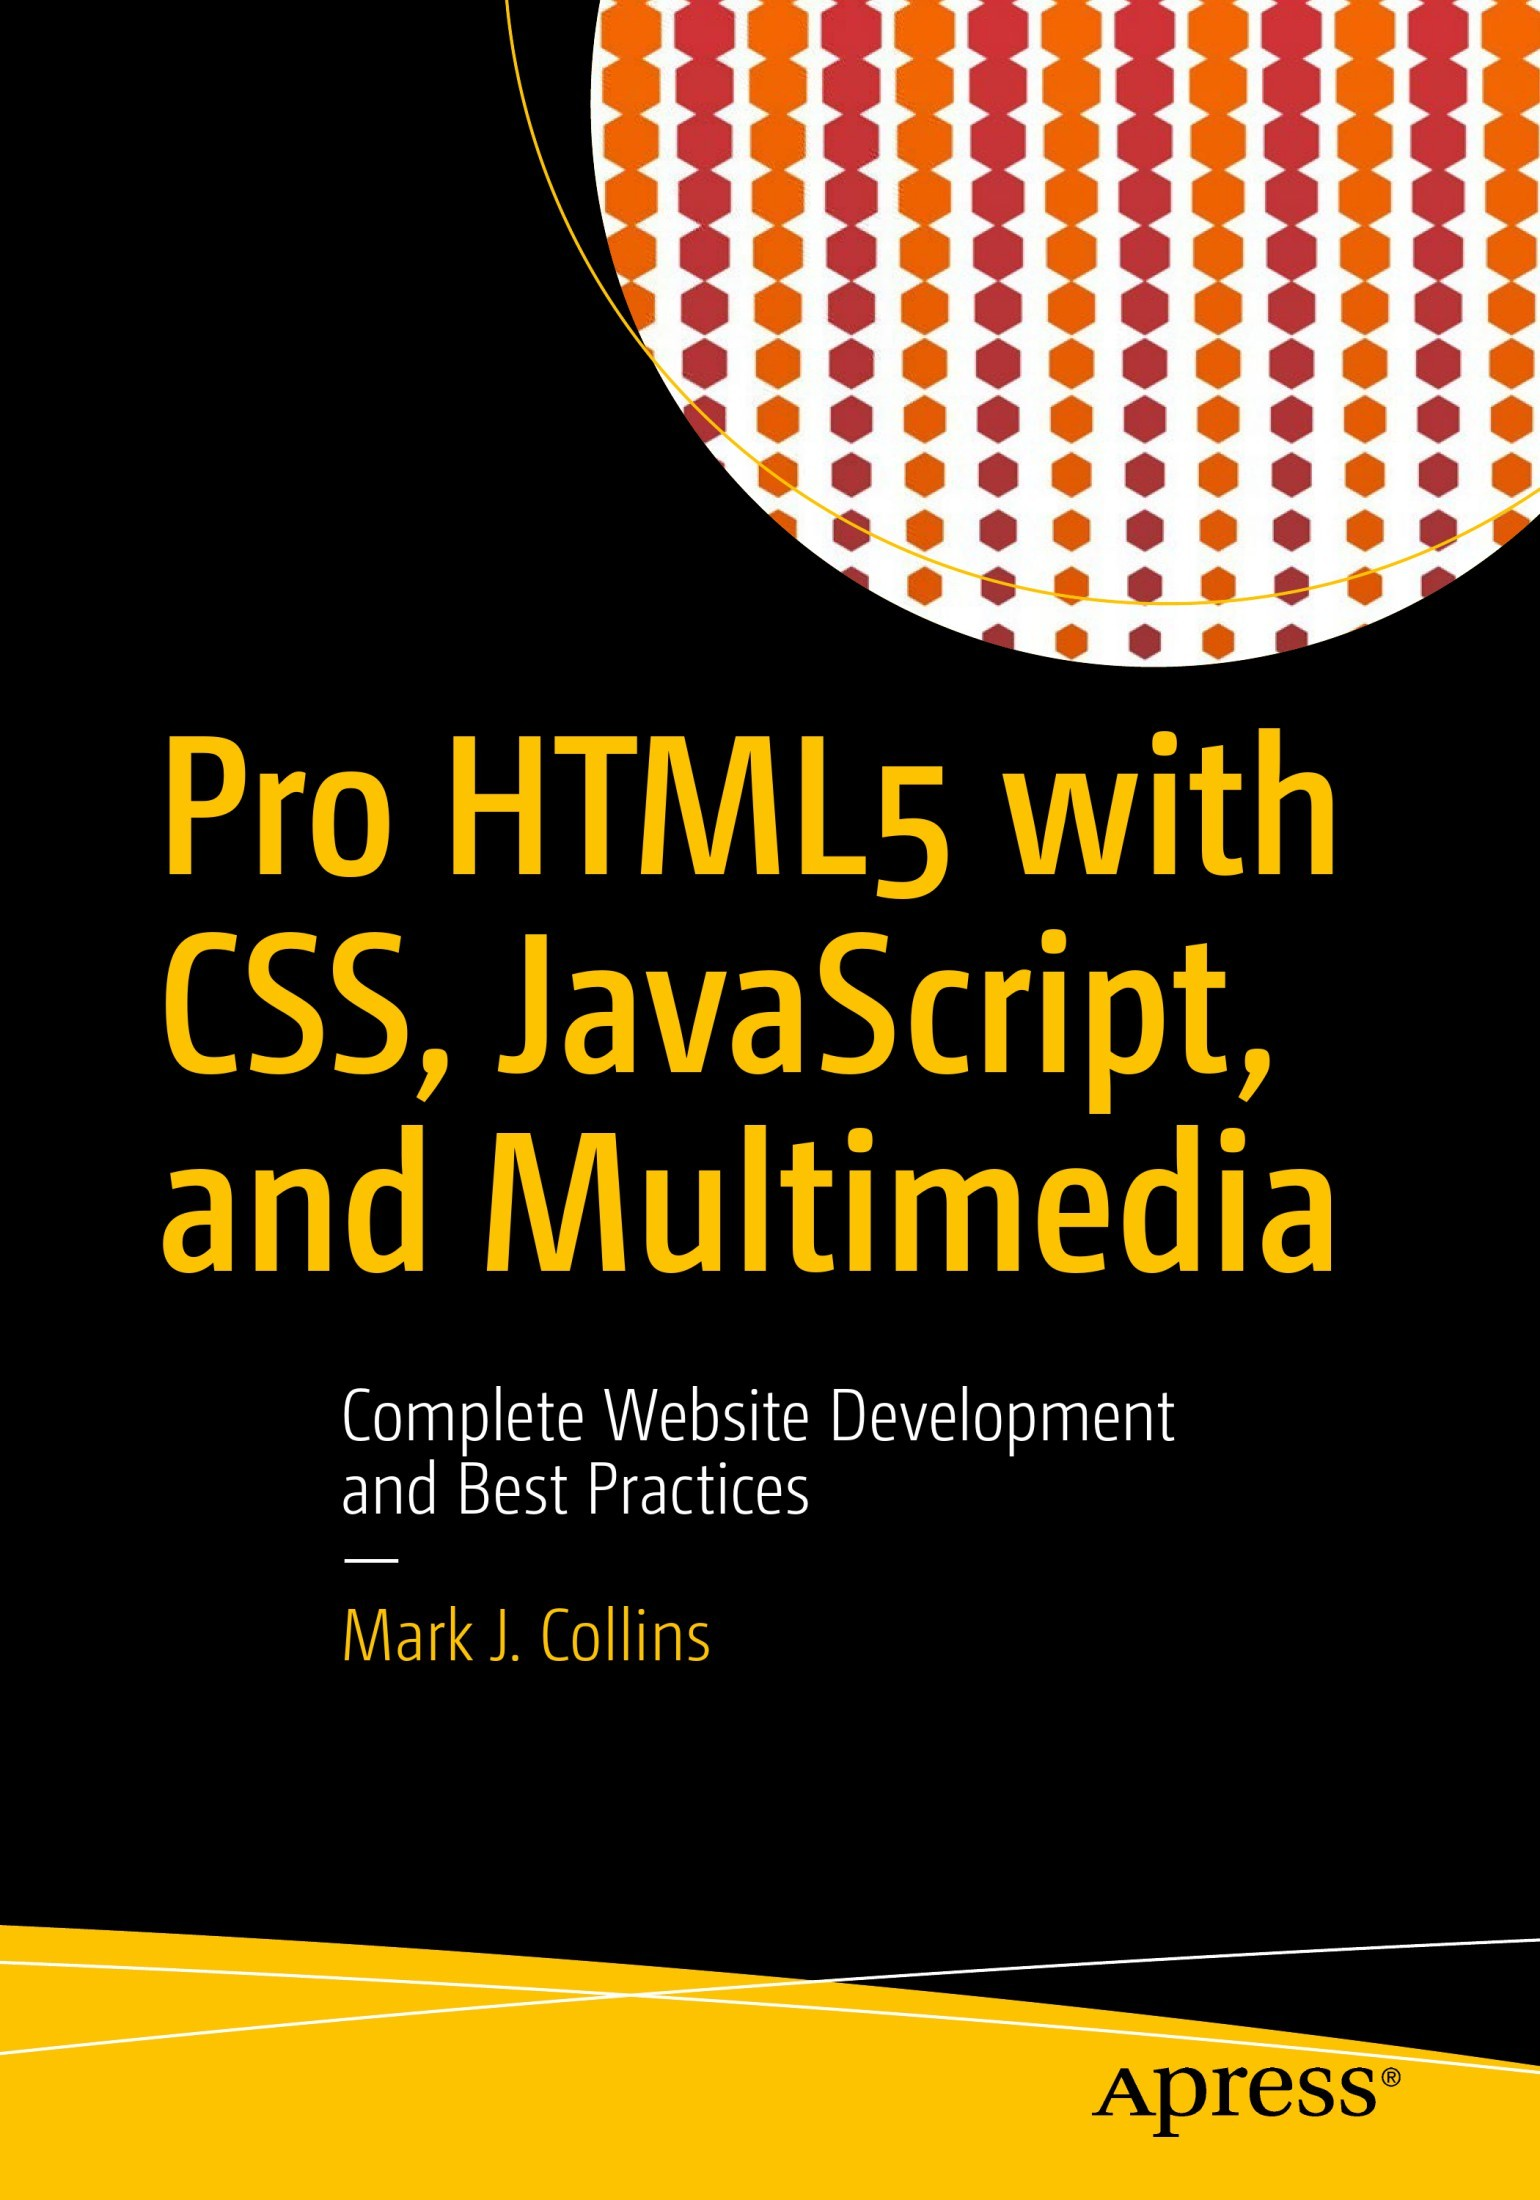 Pro HTML5 with CSS, JavaScript, and Multimedia Complete Website Development and Best Practices (1)